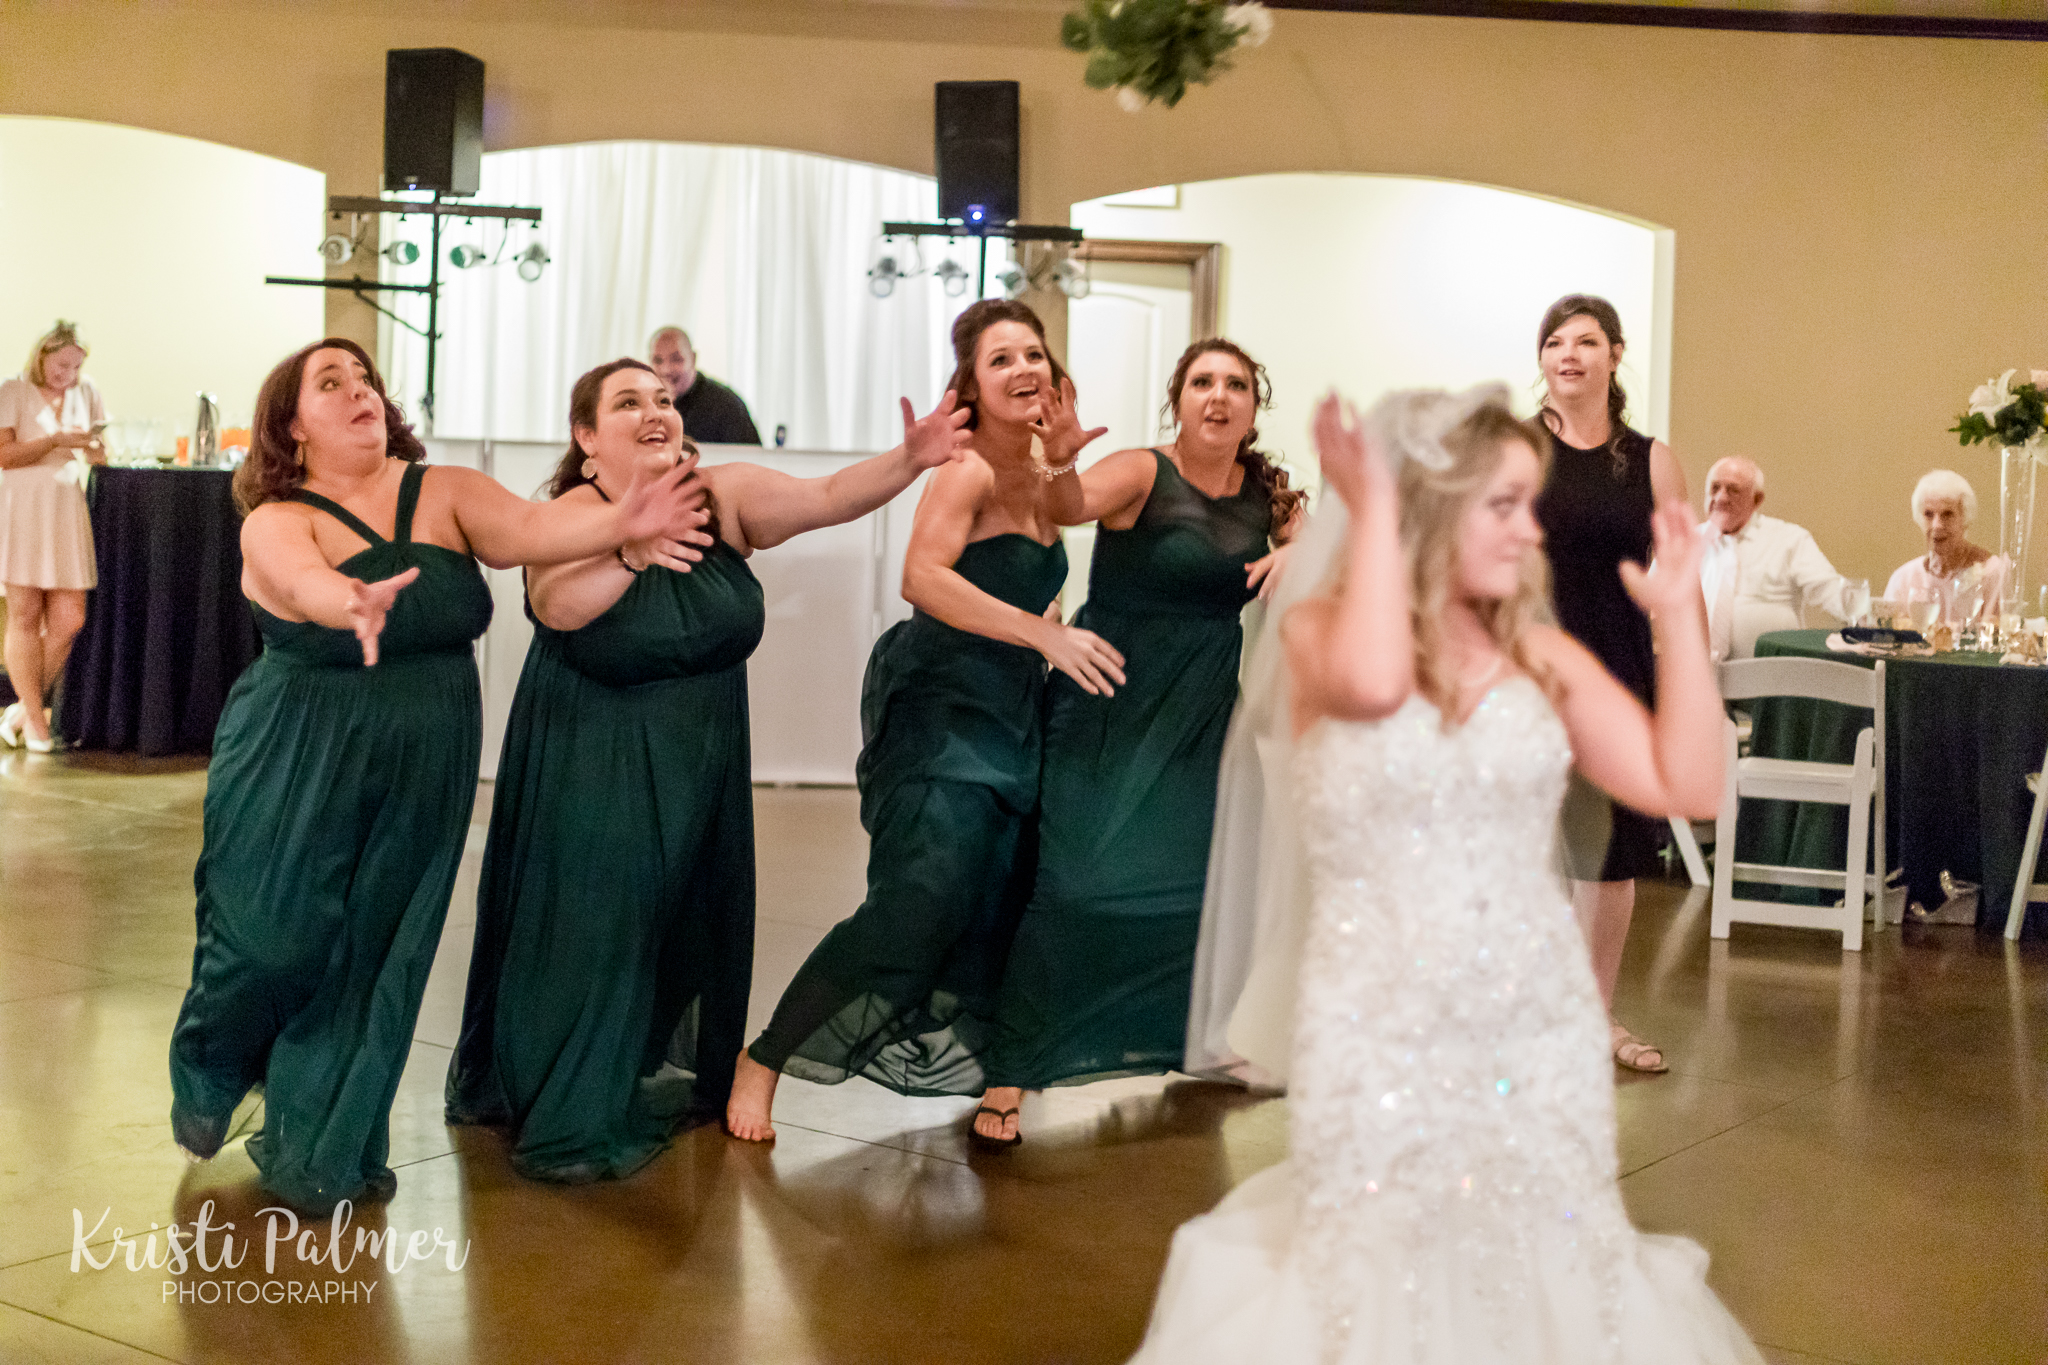 BarretWeddingSM-308.jpg